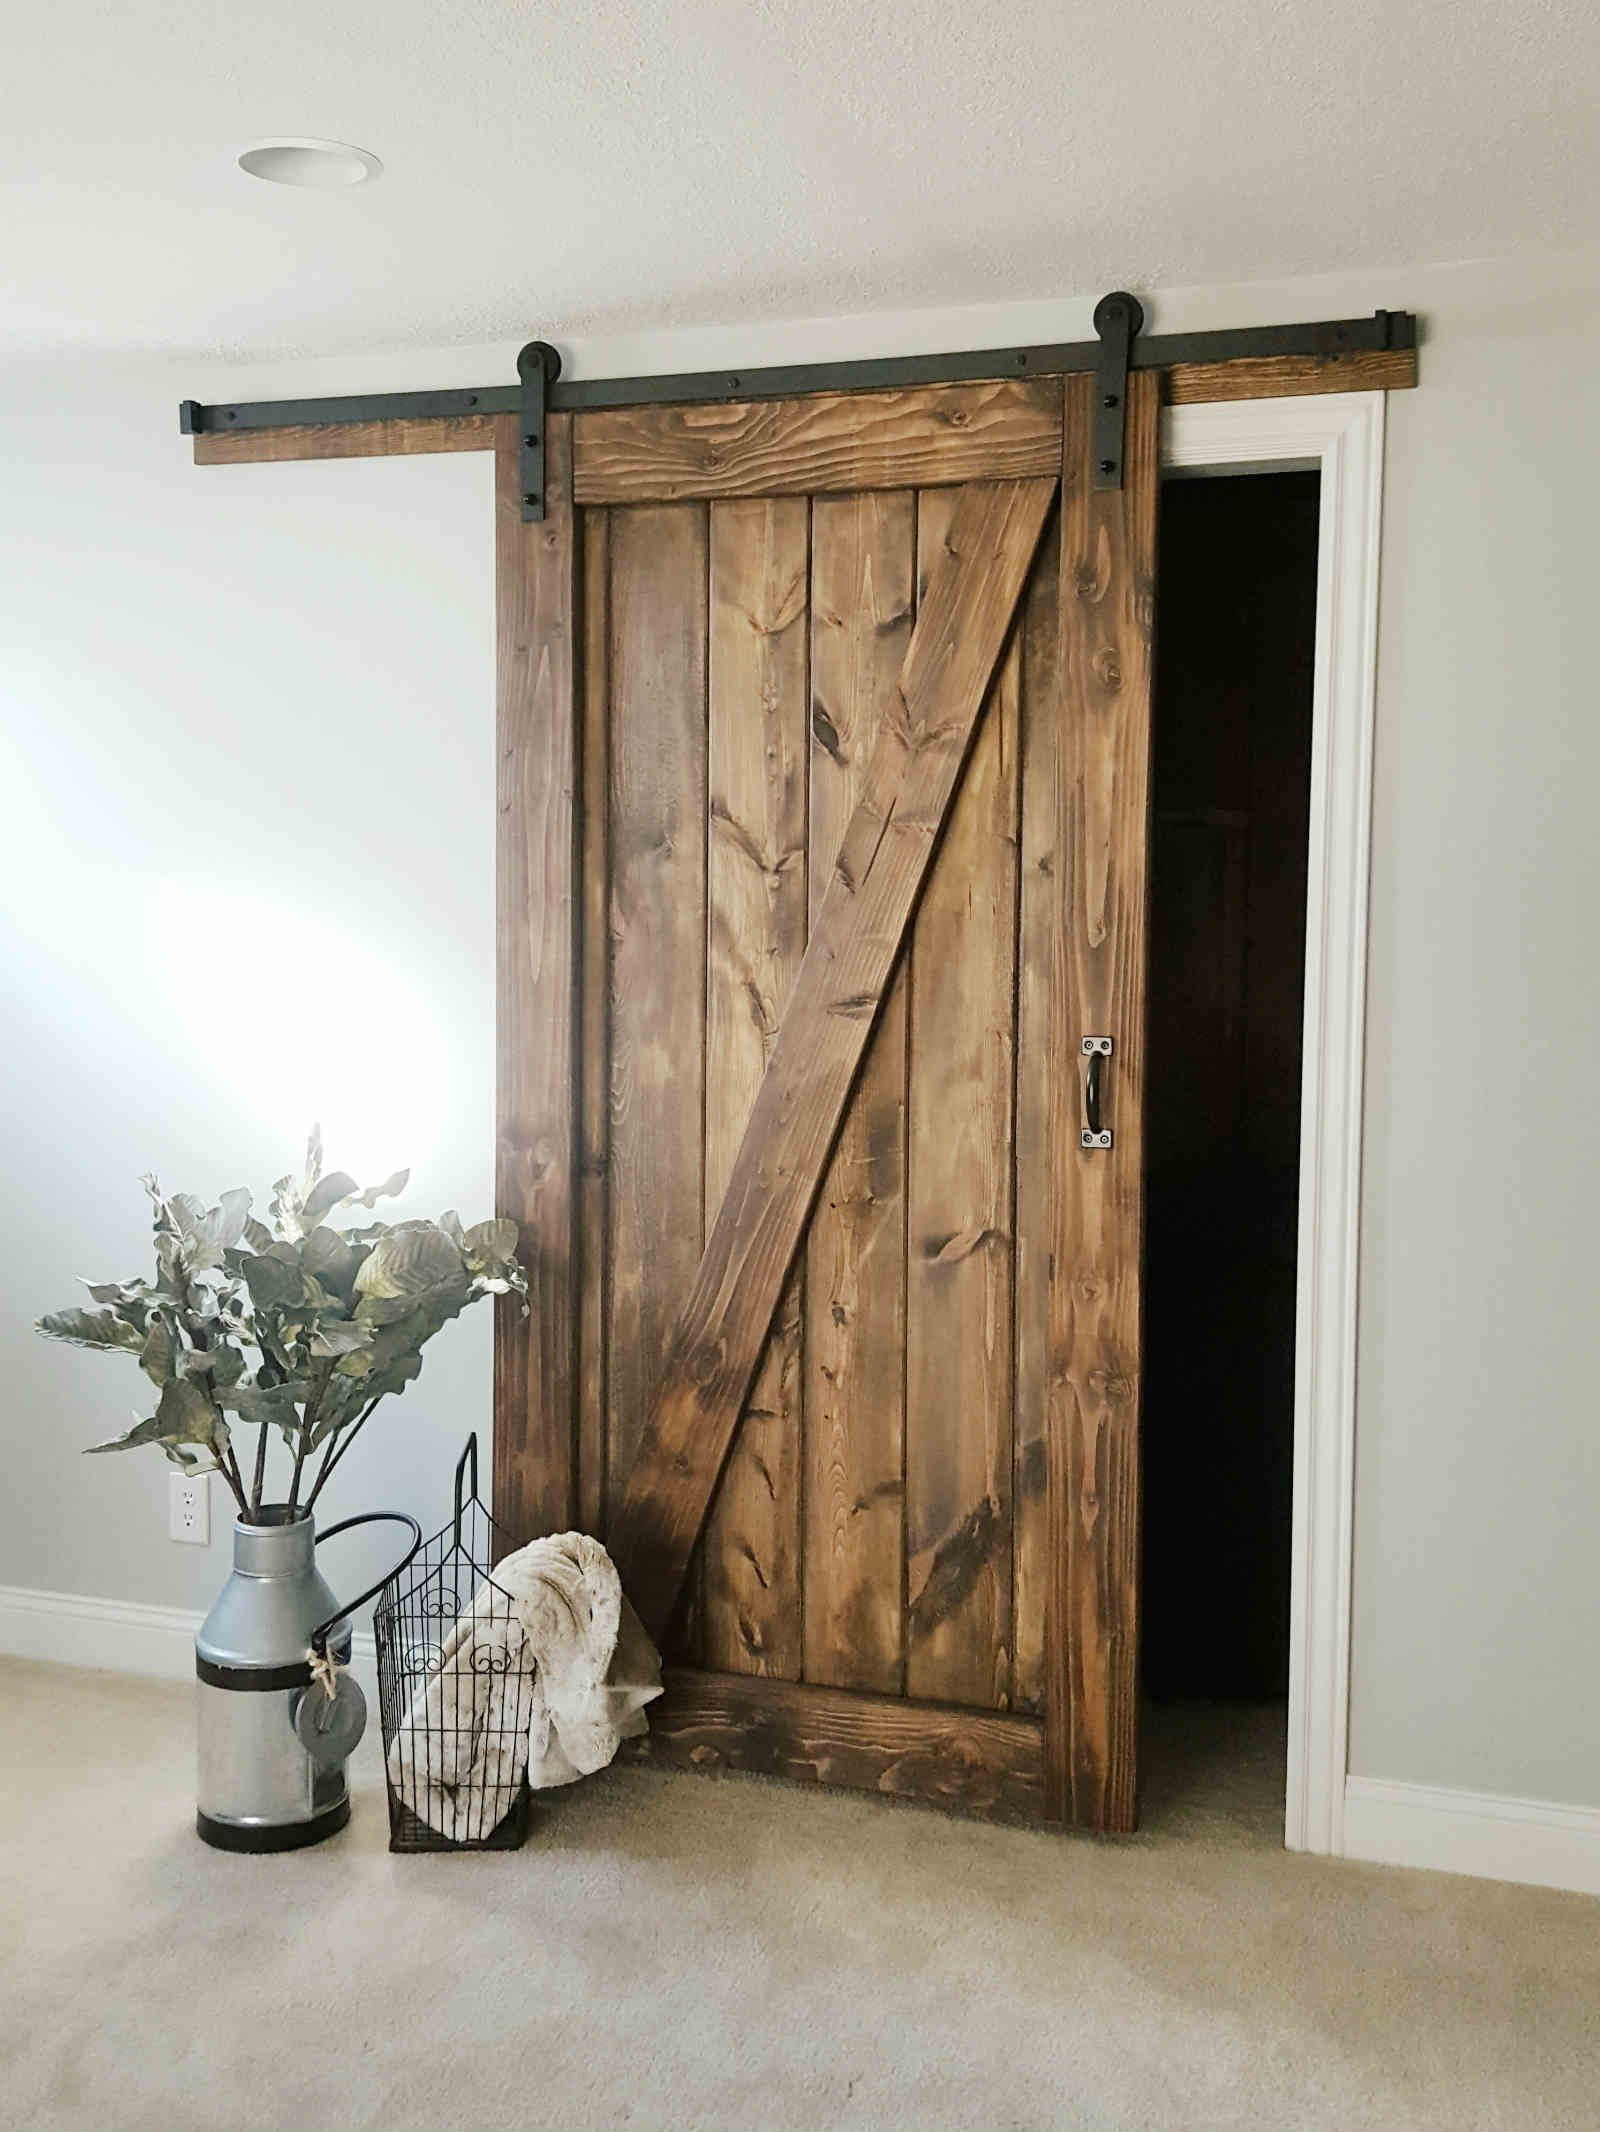 1 Panel Z Barn Door Walston Door Company N Kansas City Mo Barn Door Designs Interior Sliding Barn Doors Barn Door Closet